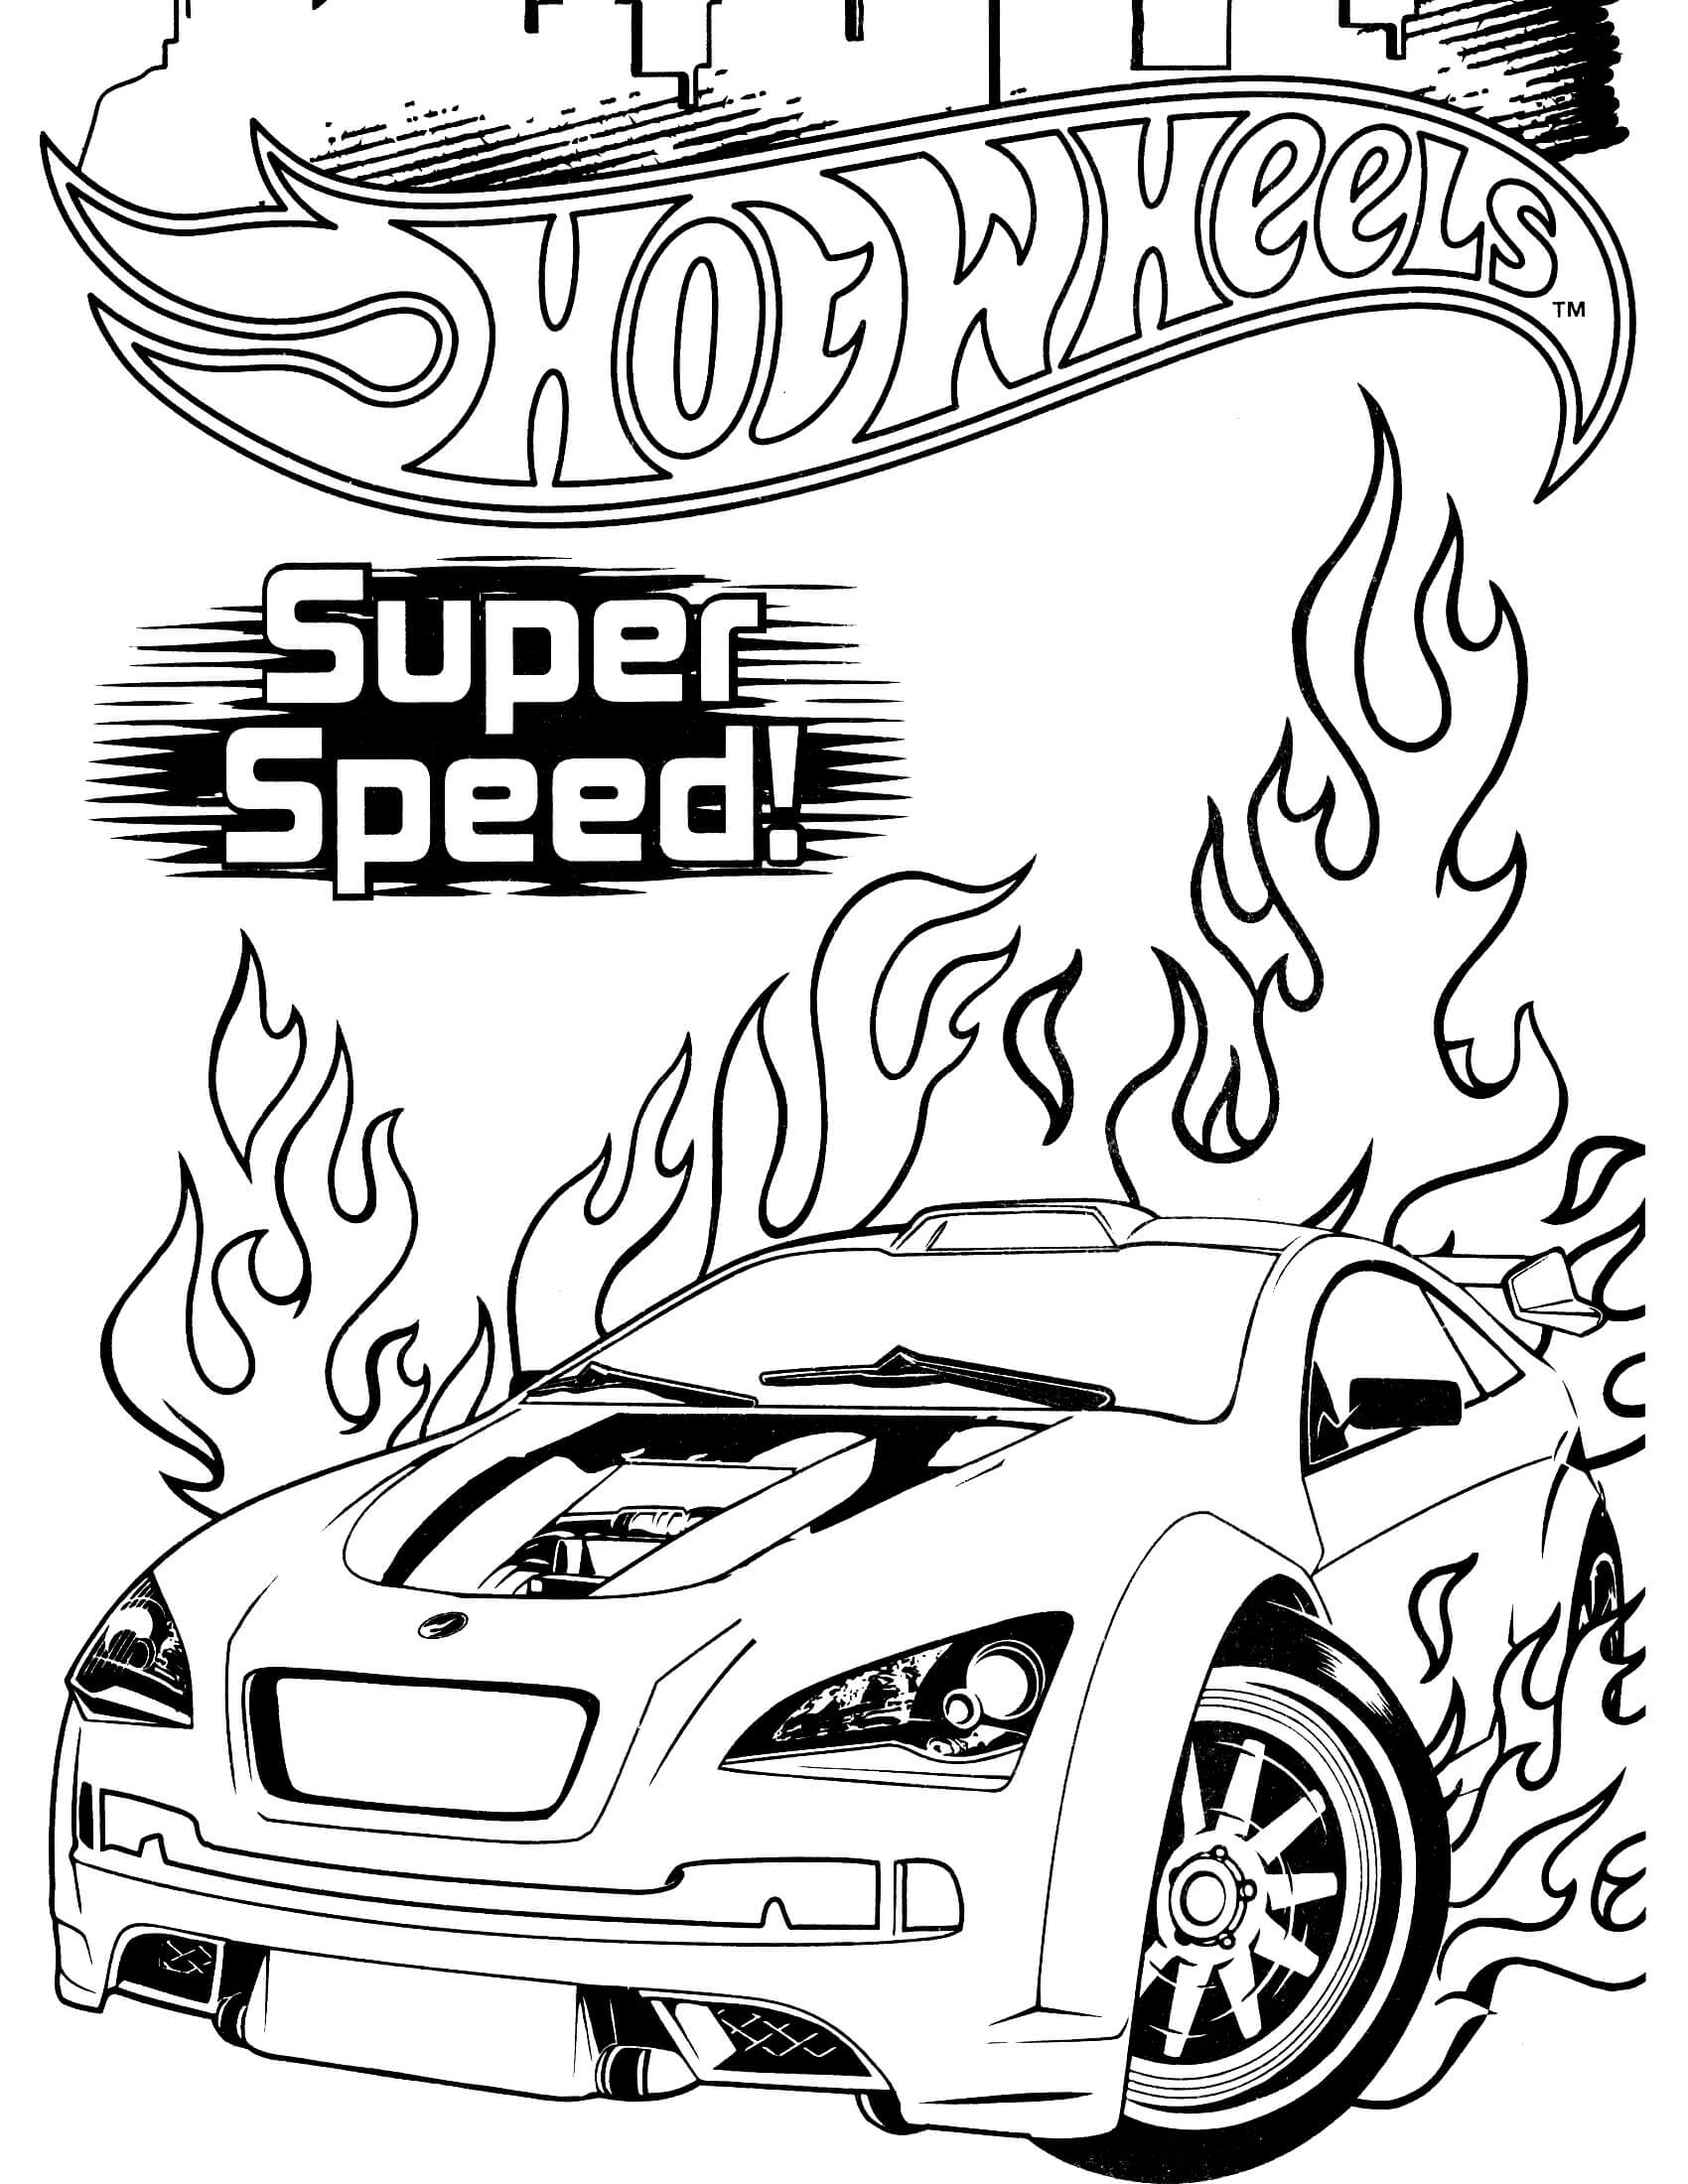 hotwheels colouring pages hot wheels 58 coloringcolorcom pages colouring hotwheels